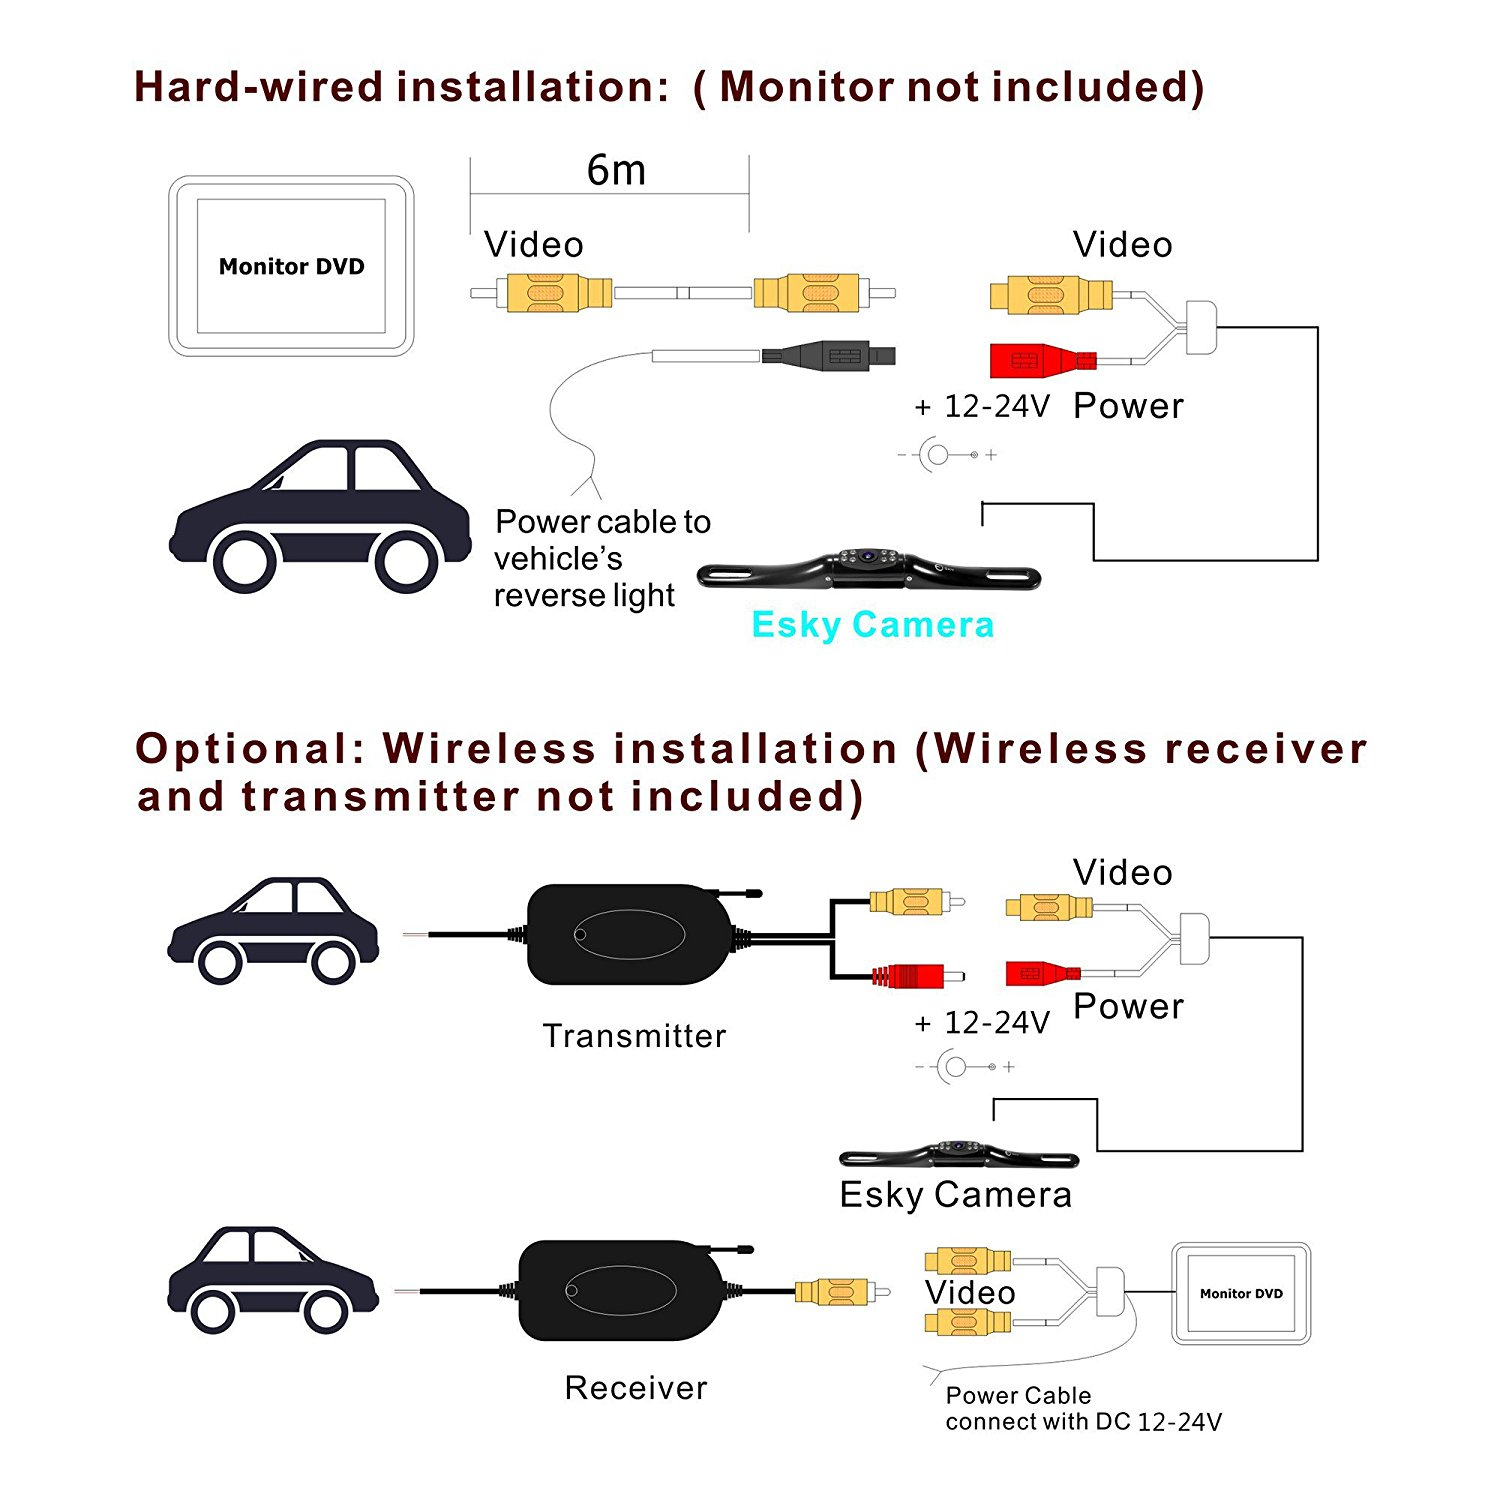 sv650 wiring diagram reversing switch peak backup camera libraryback up cam d74ts install block and schematic diagrams